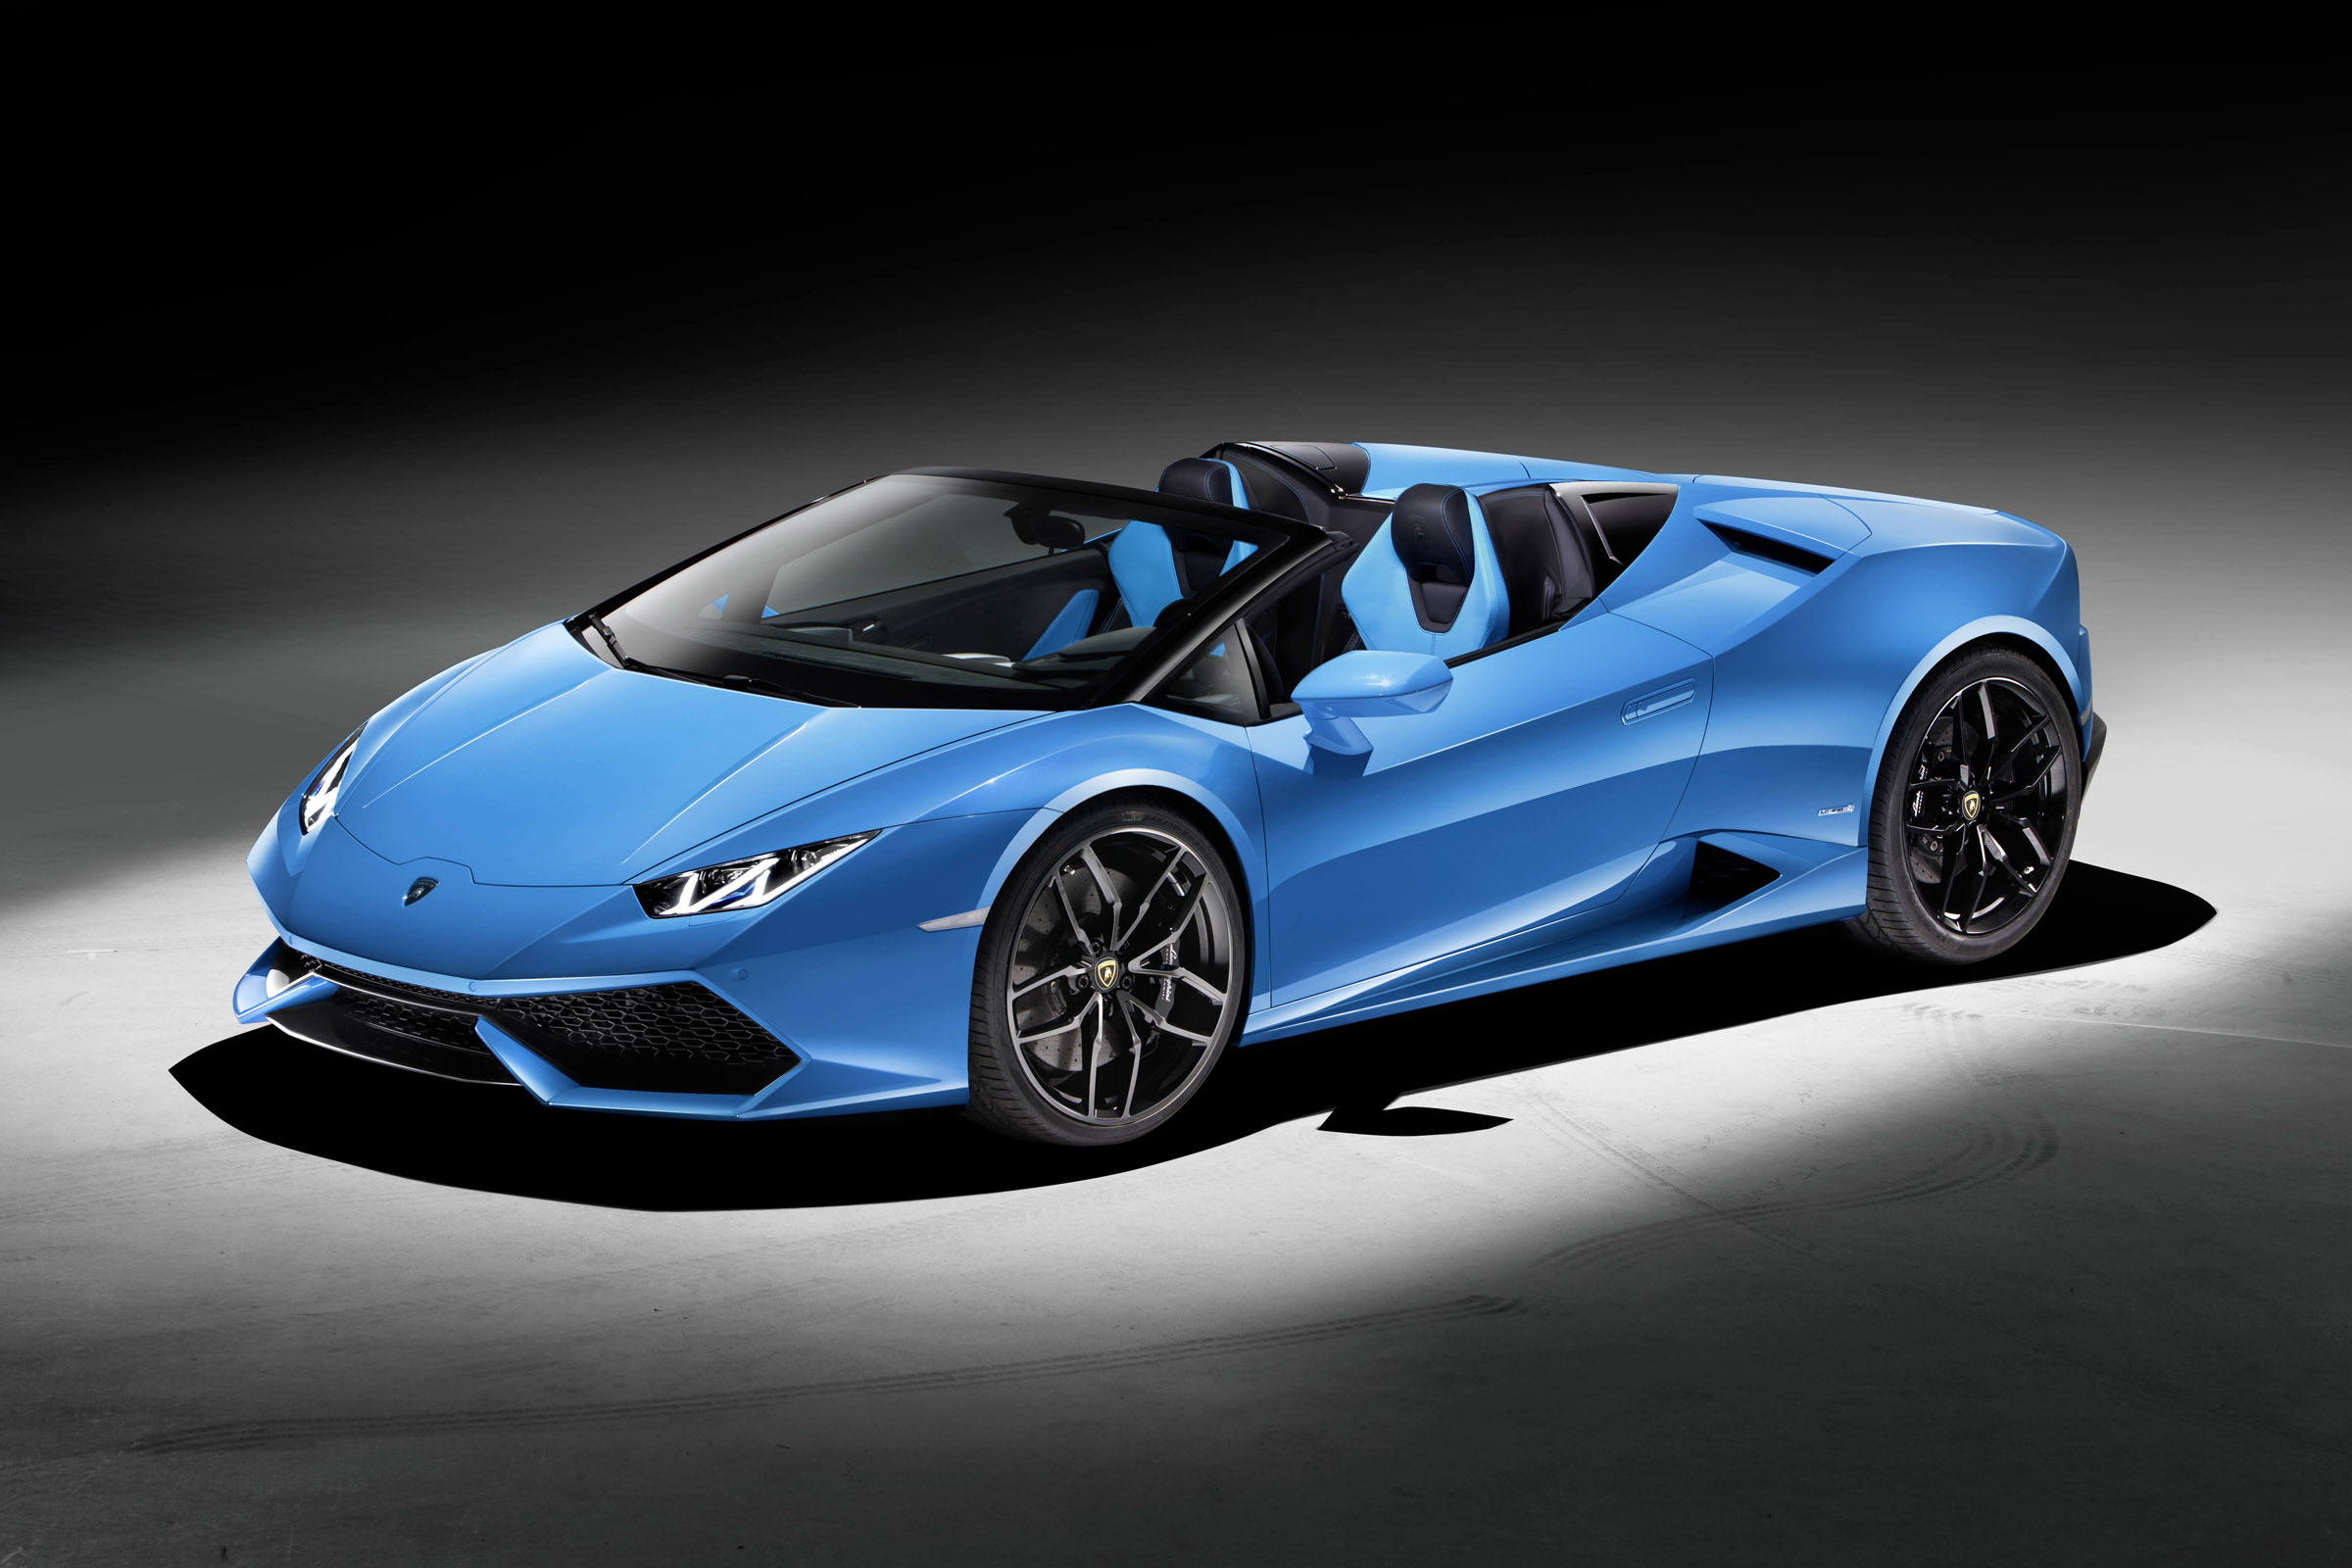 lamborghini huracan lp 610 4 spyder performance and lifestyle under the open sky. Black Bedroom Furniture Sets. Home Design Ideas